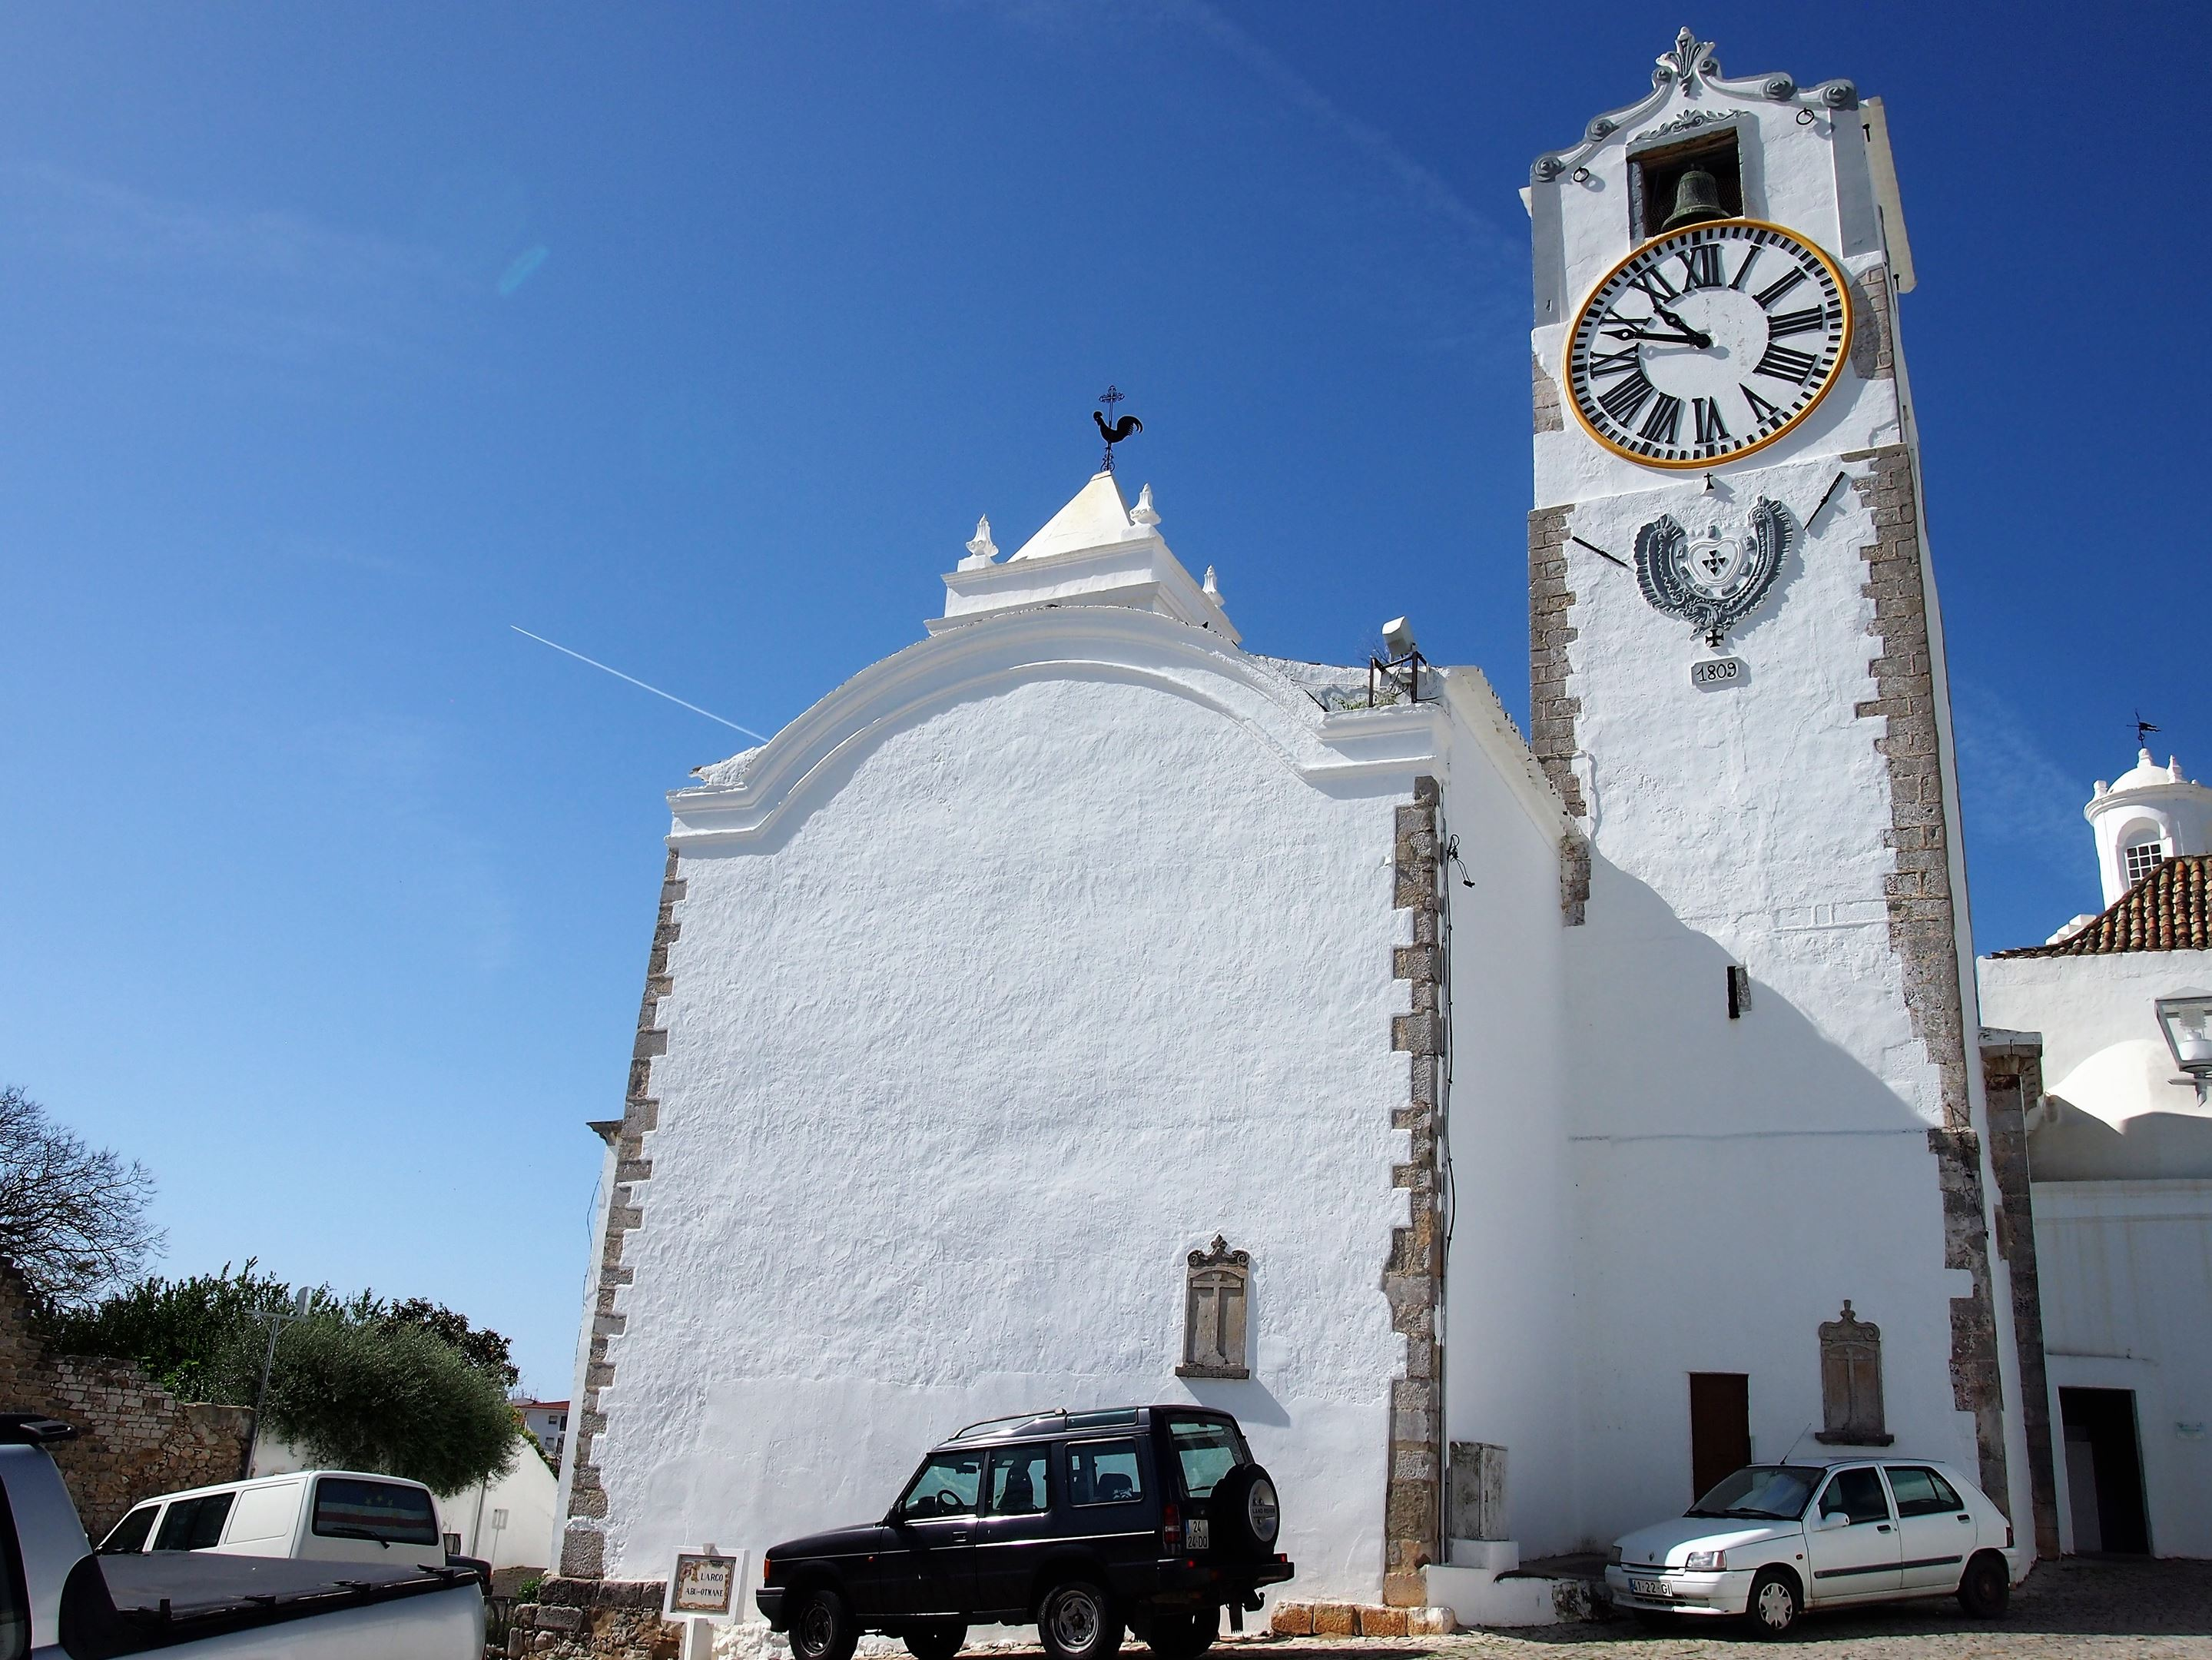 The clocktower of One of Igreja (church) de Santa Maria do Castelo